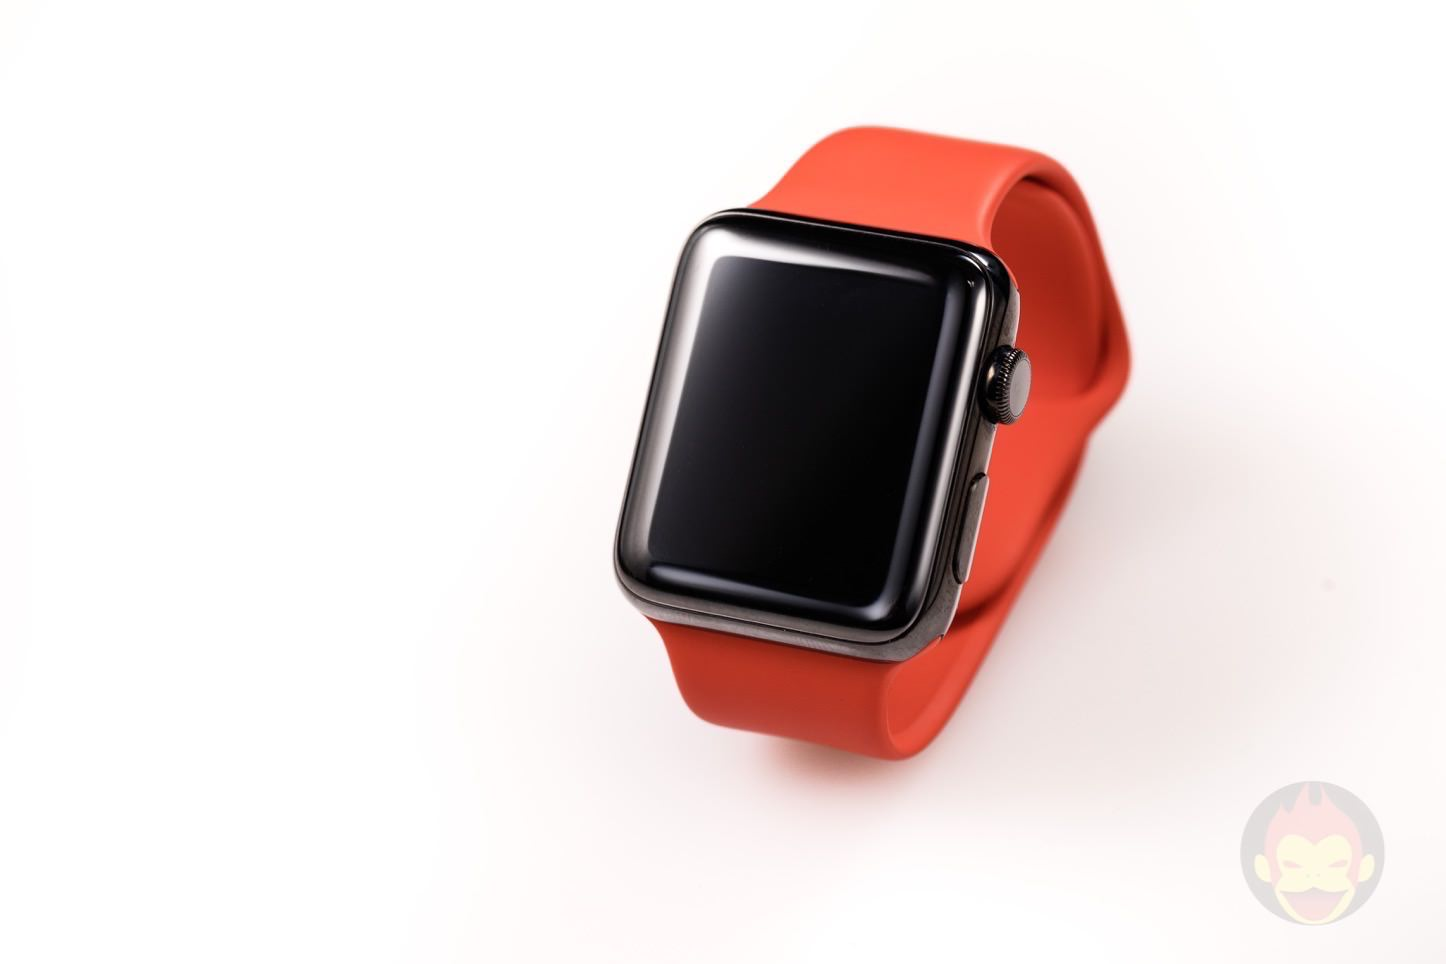 Apple-Watch-Product-Red-Sports-Band-03.jpg